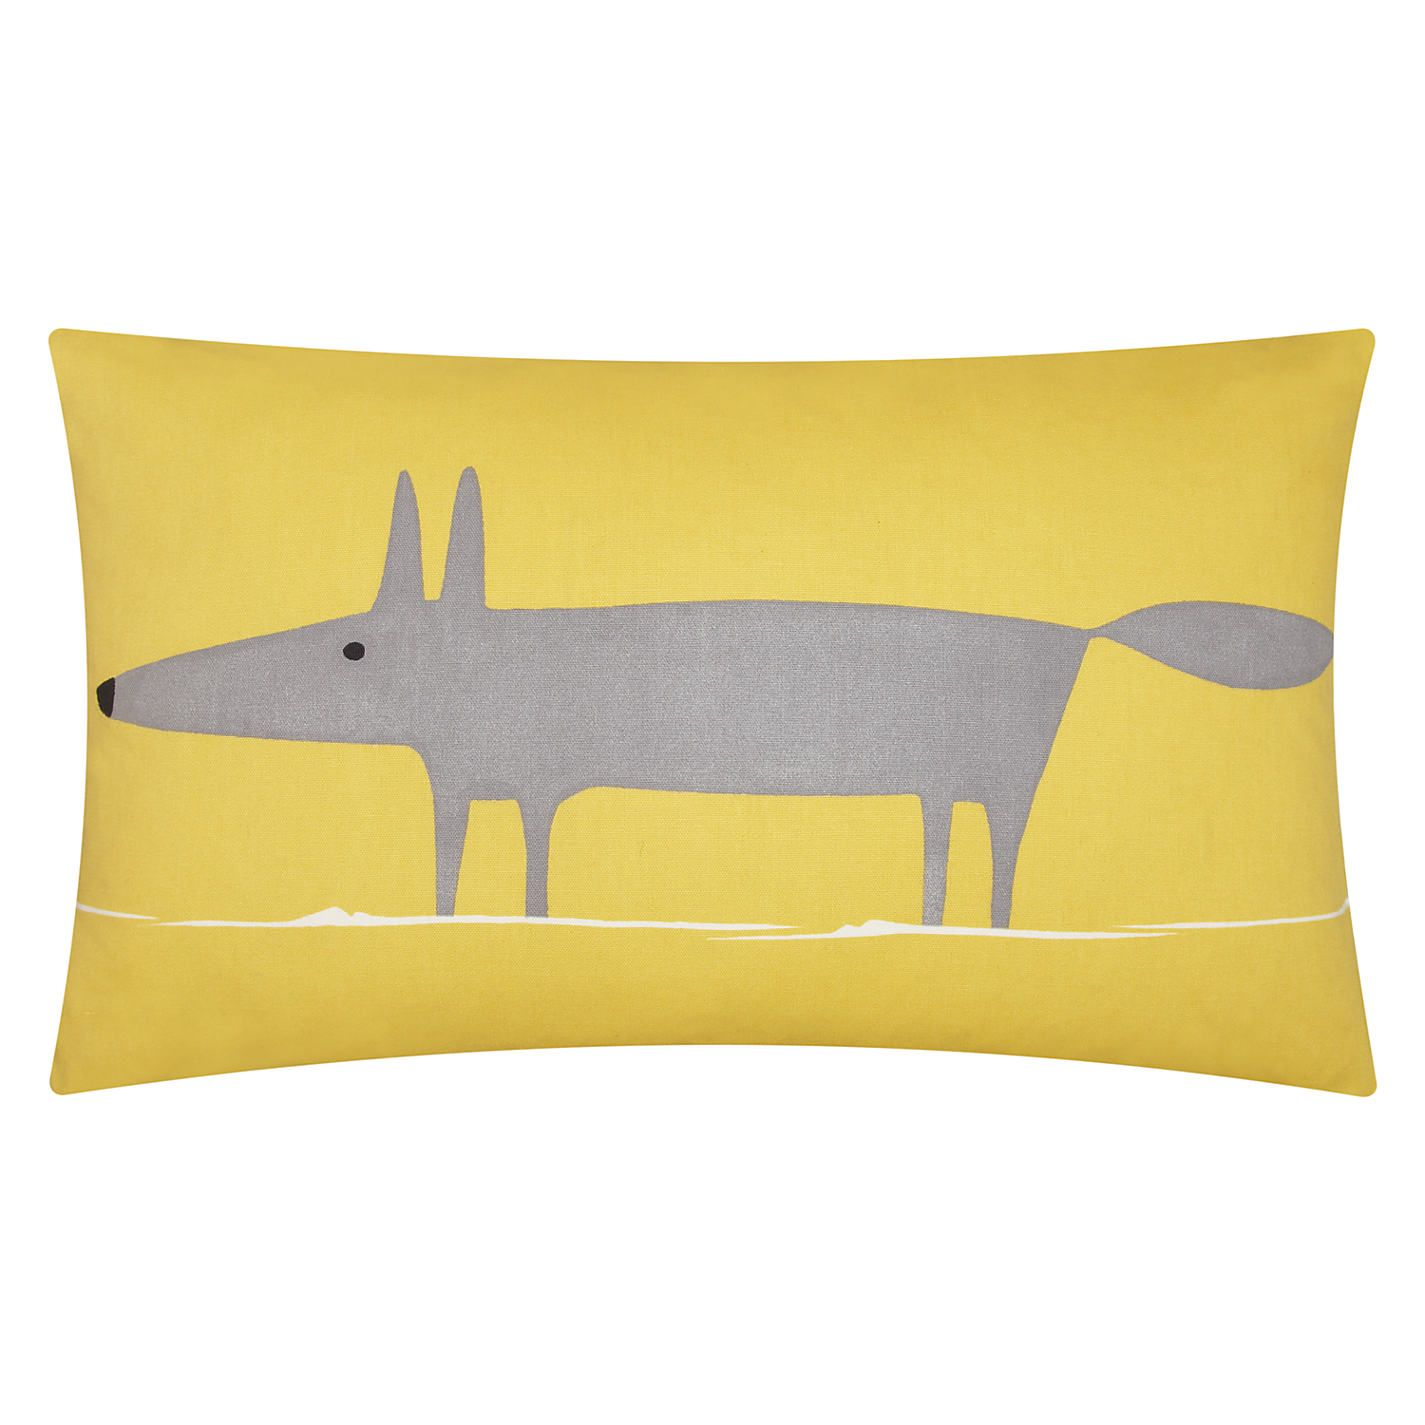 Scion Mr Fox Cushion John Lewis Mustard Cushions And